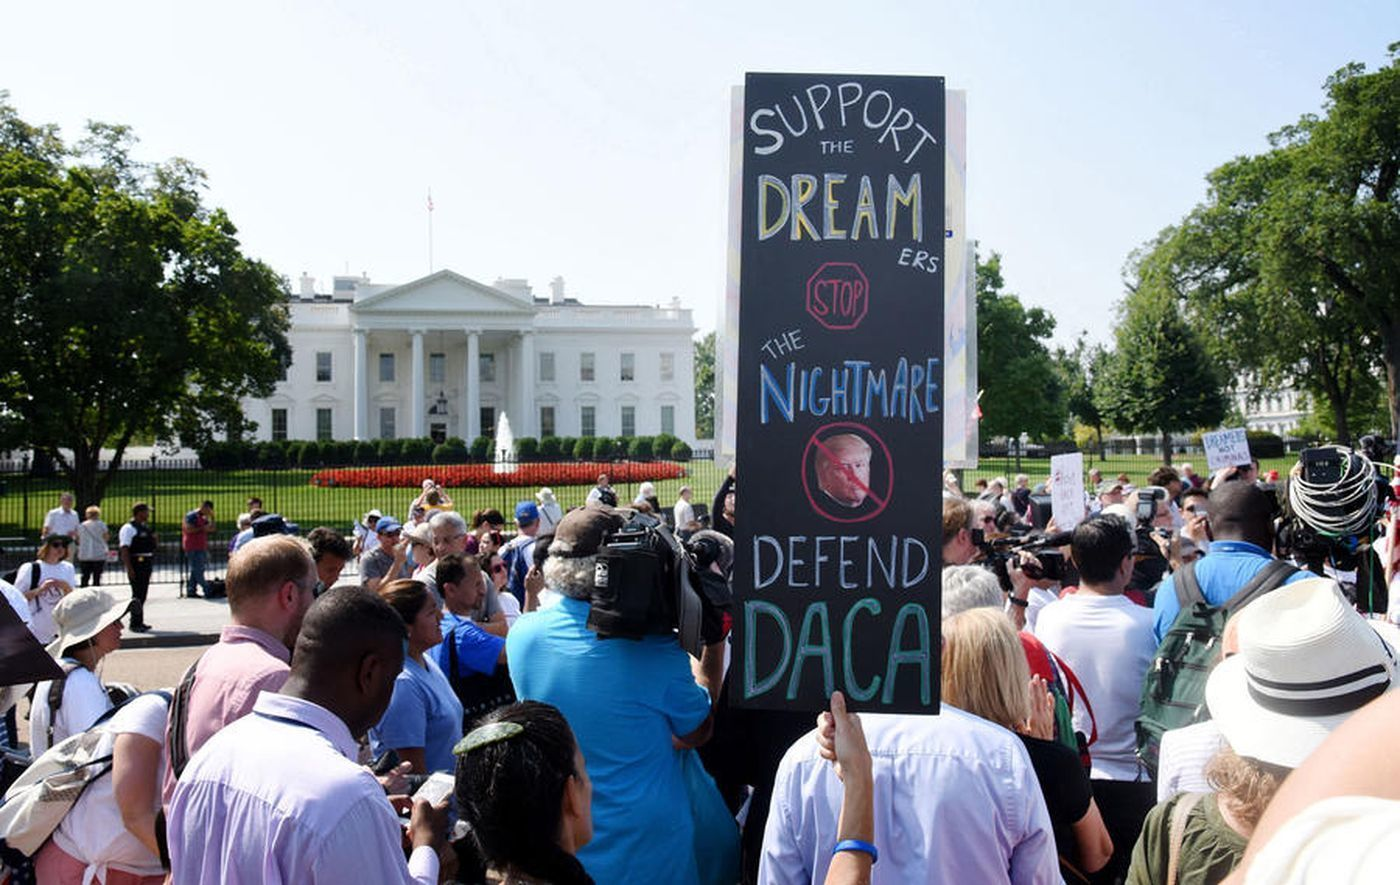 The Supreme Court rejected Trump's attempt to end DACA.